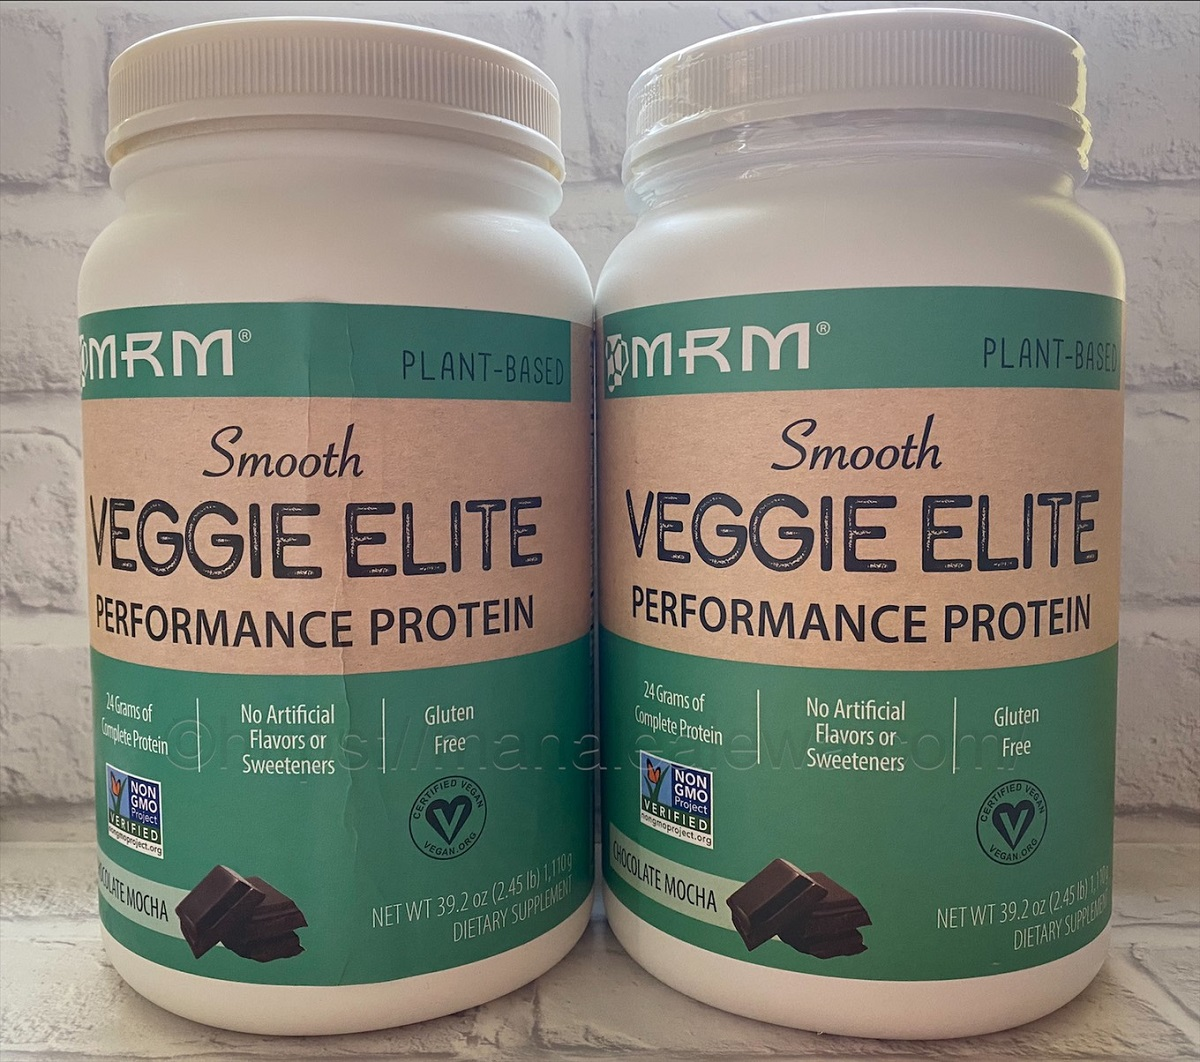 MRM-veggie-elite-performance-protein-chocolate-mocha-image